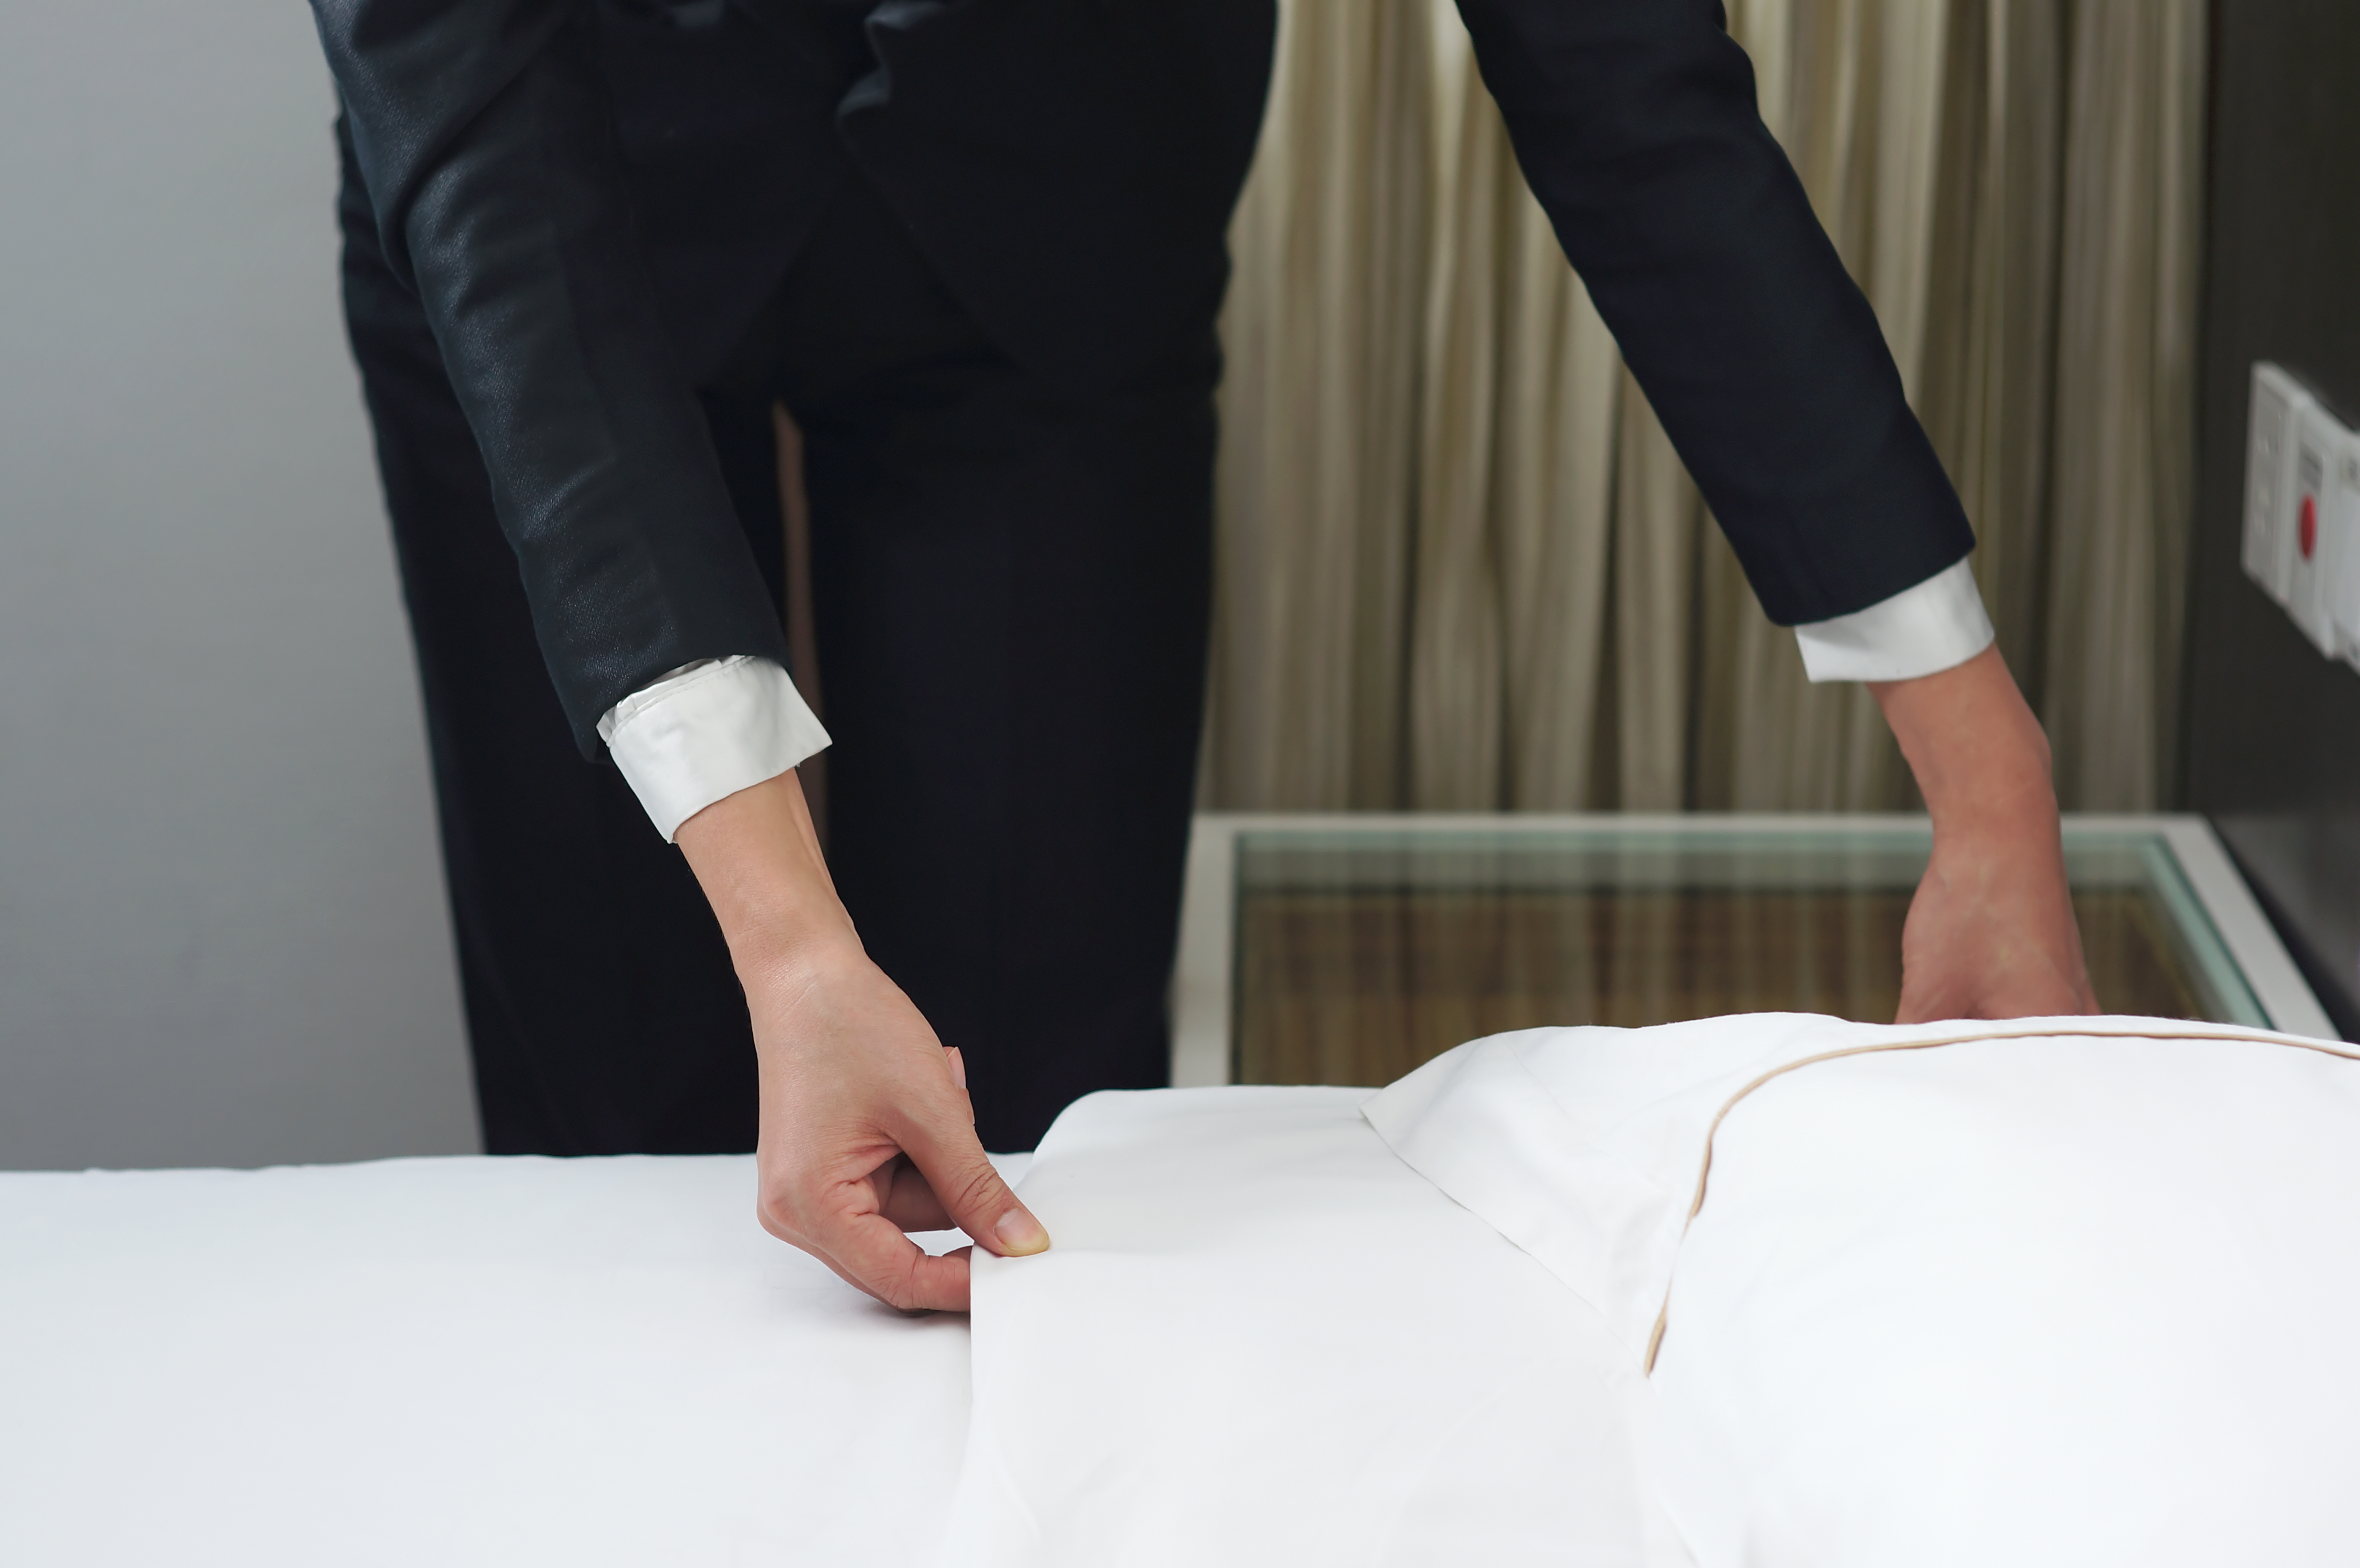 Microchips to tell travellers when hotel linens were last washed